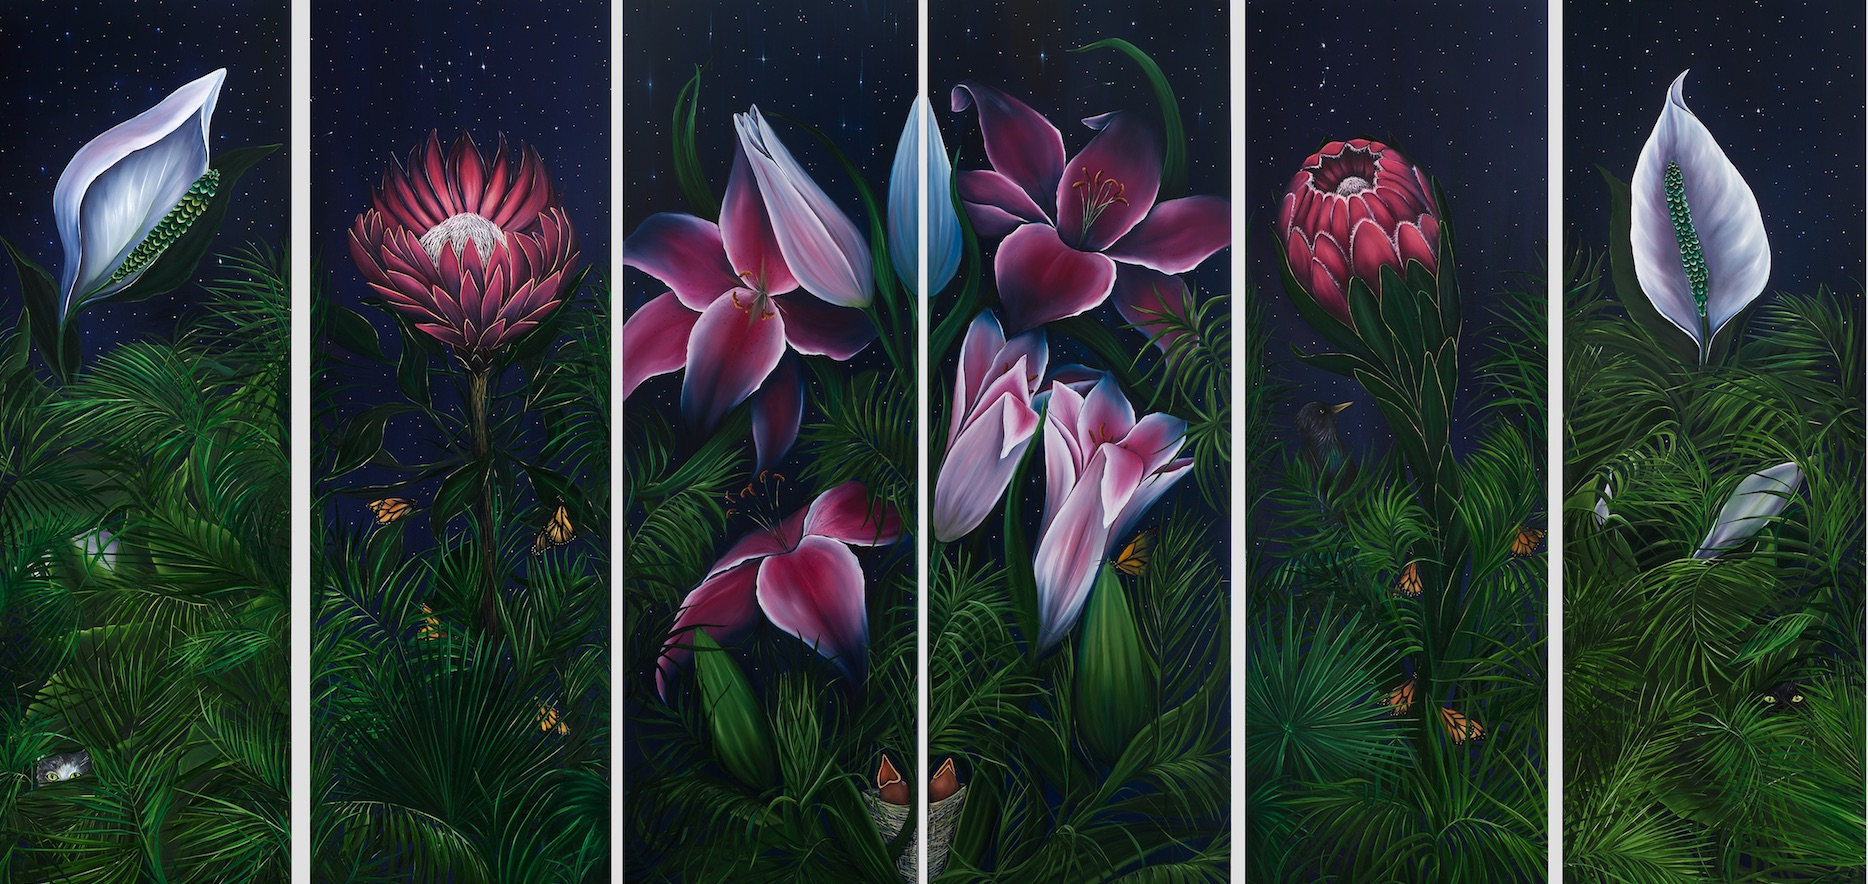 Allison Green Night Garden Oil on Canvas